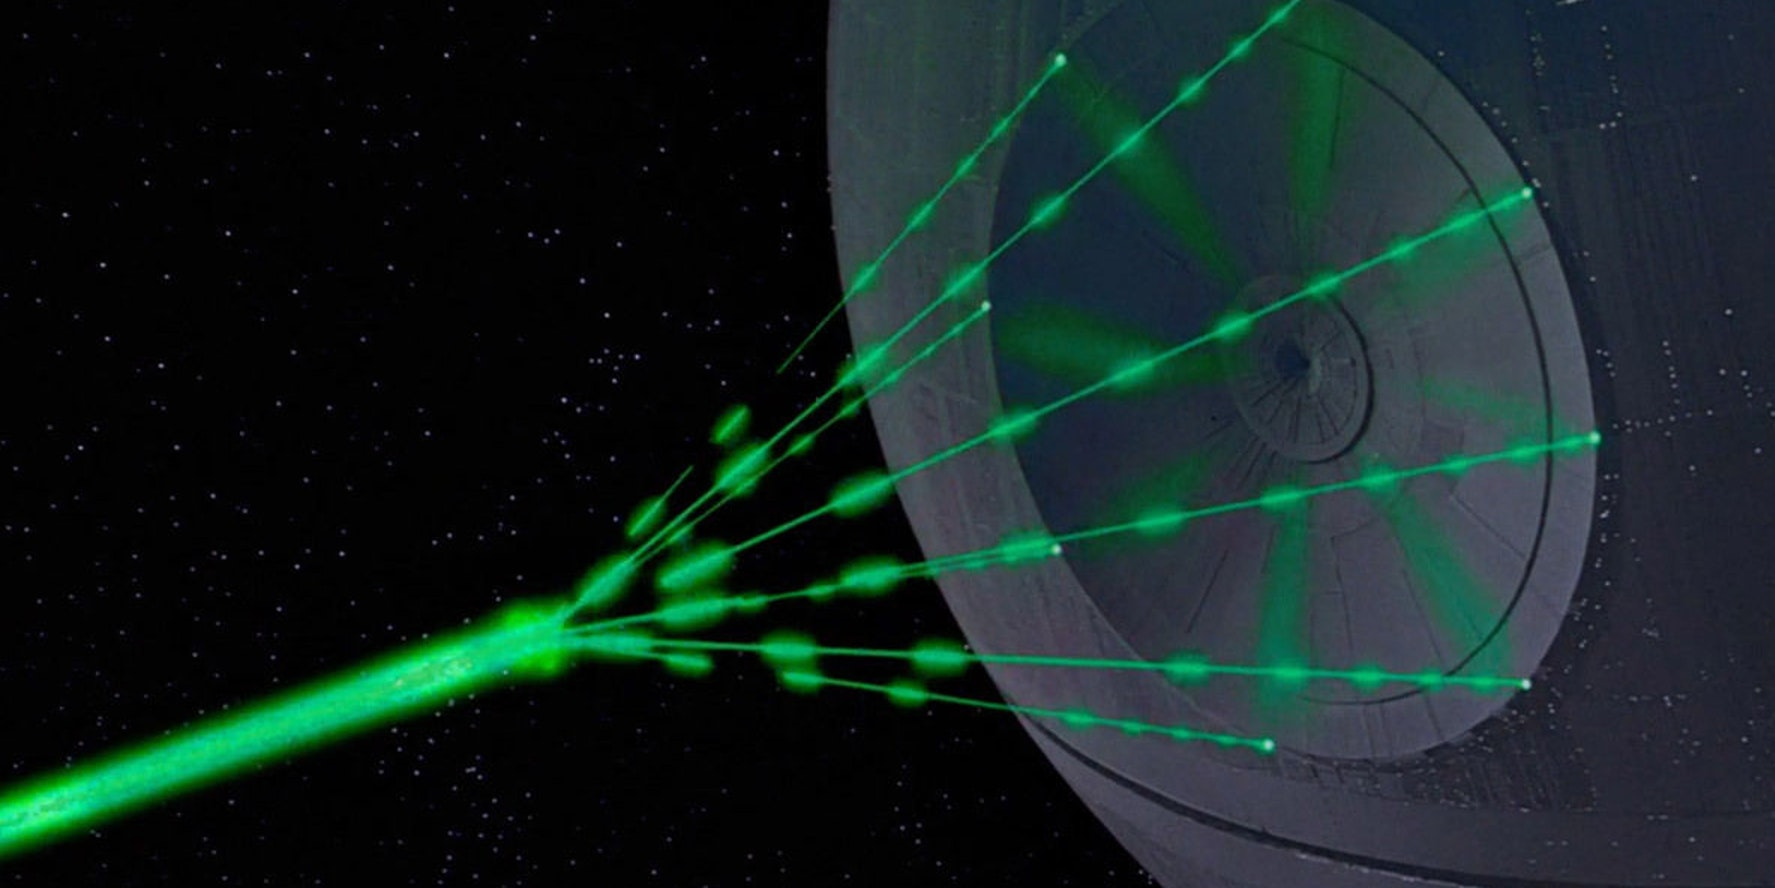 How Much Power Would the Death Star Need to Blow up the Earth?